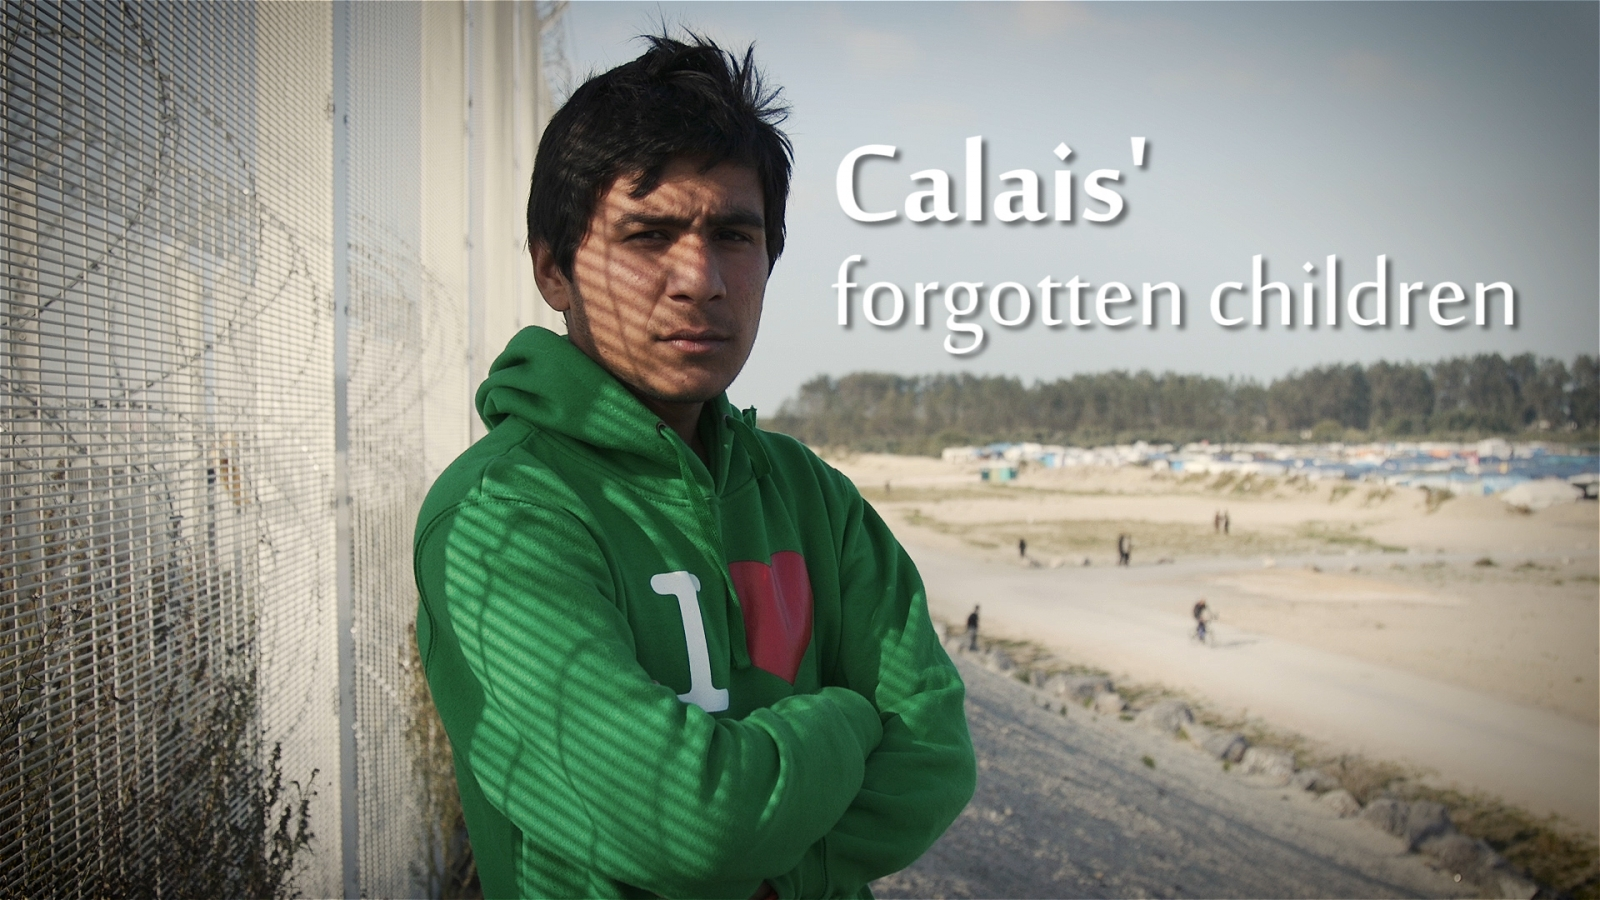 Calais' forgotten child refugees